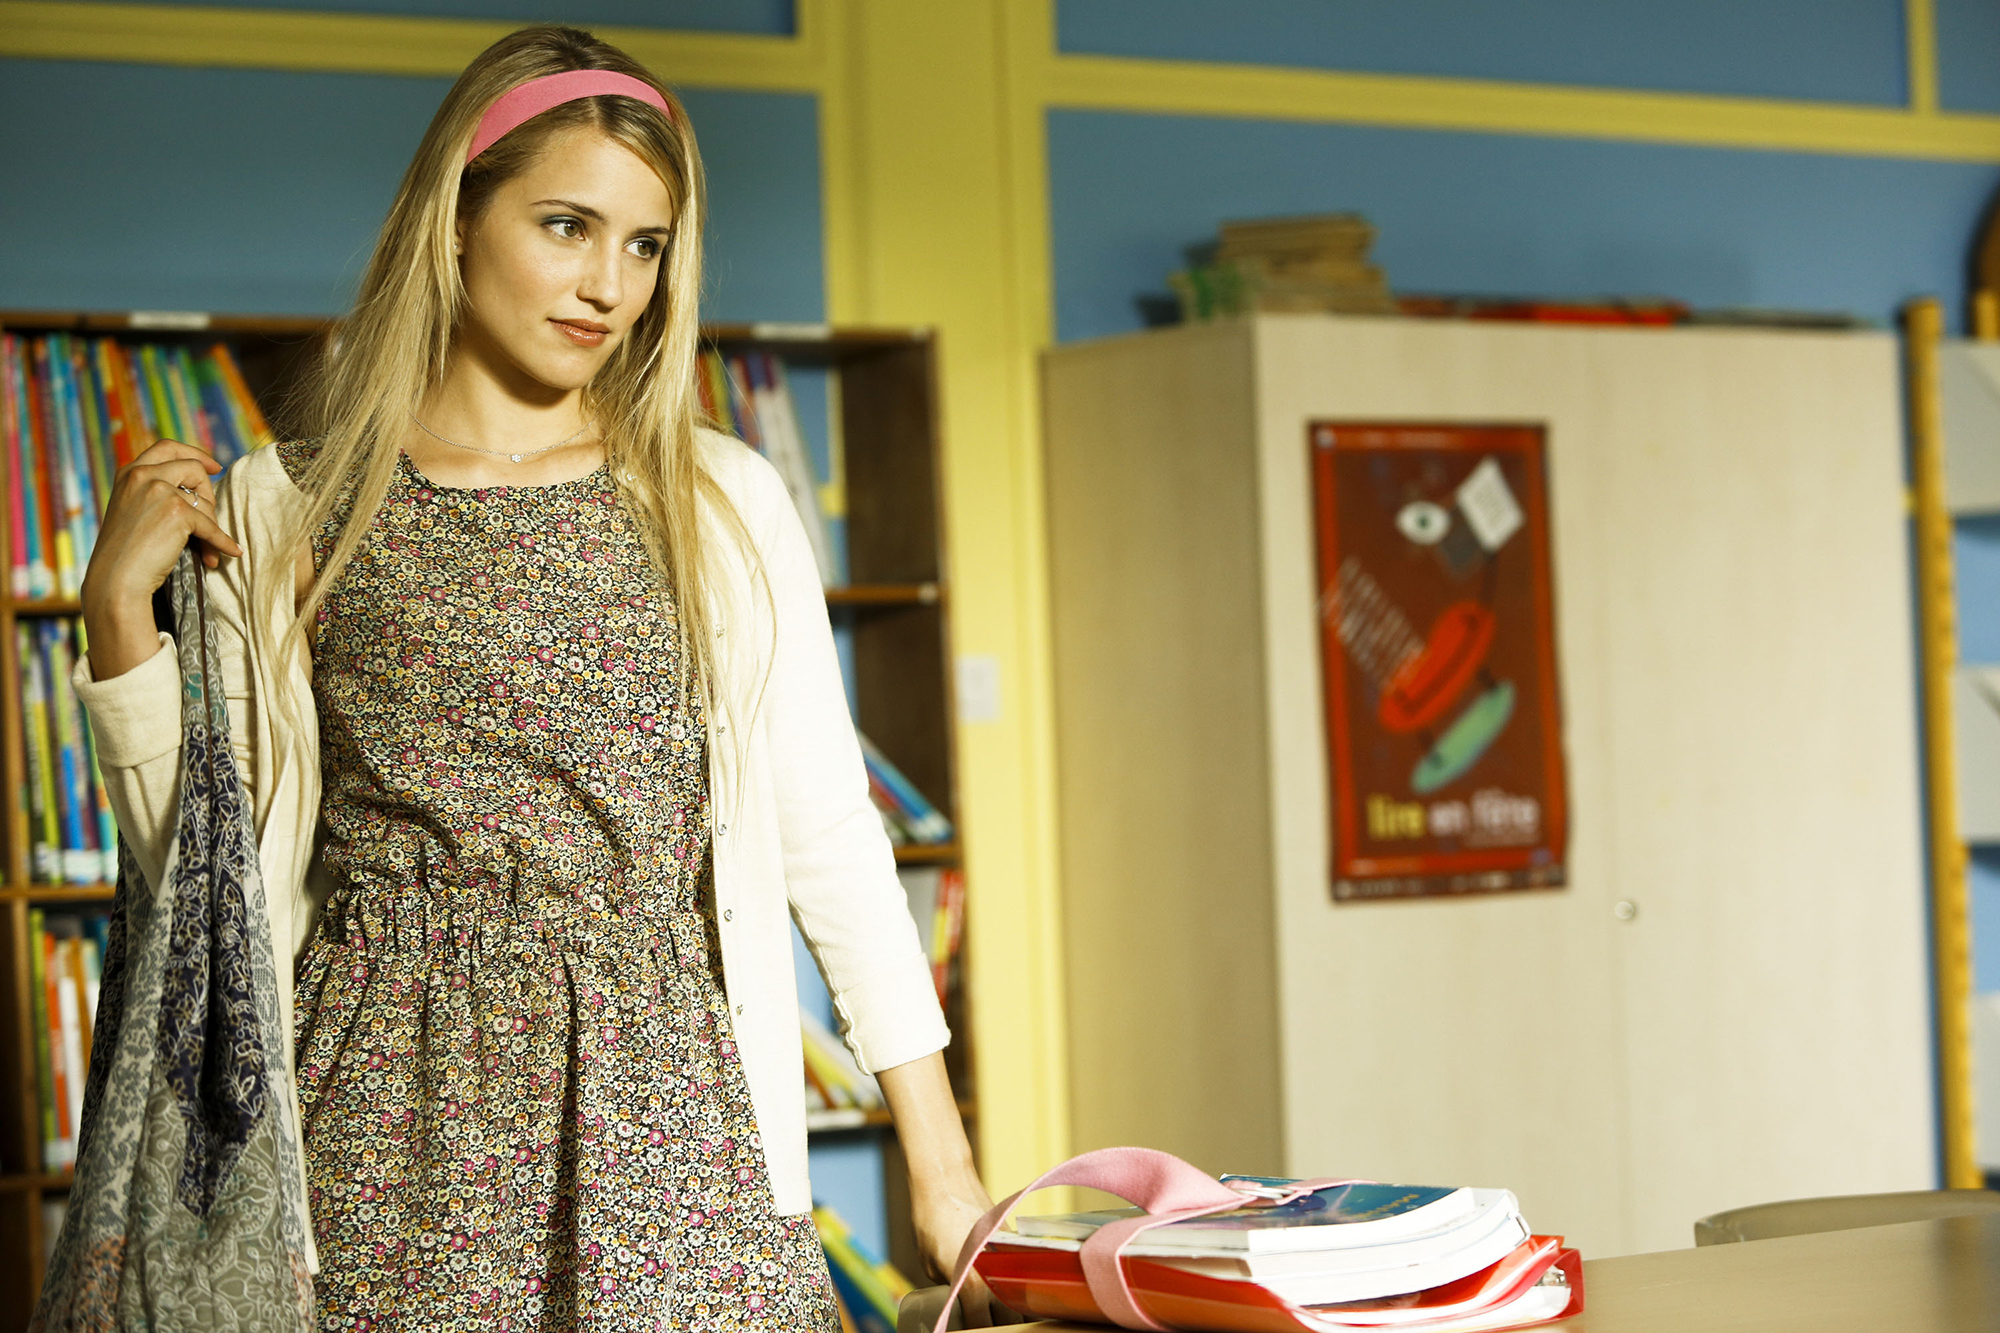 Family Dianna Agron wallpapers